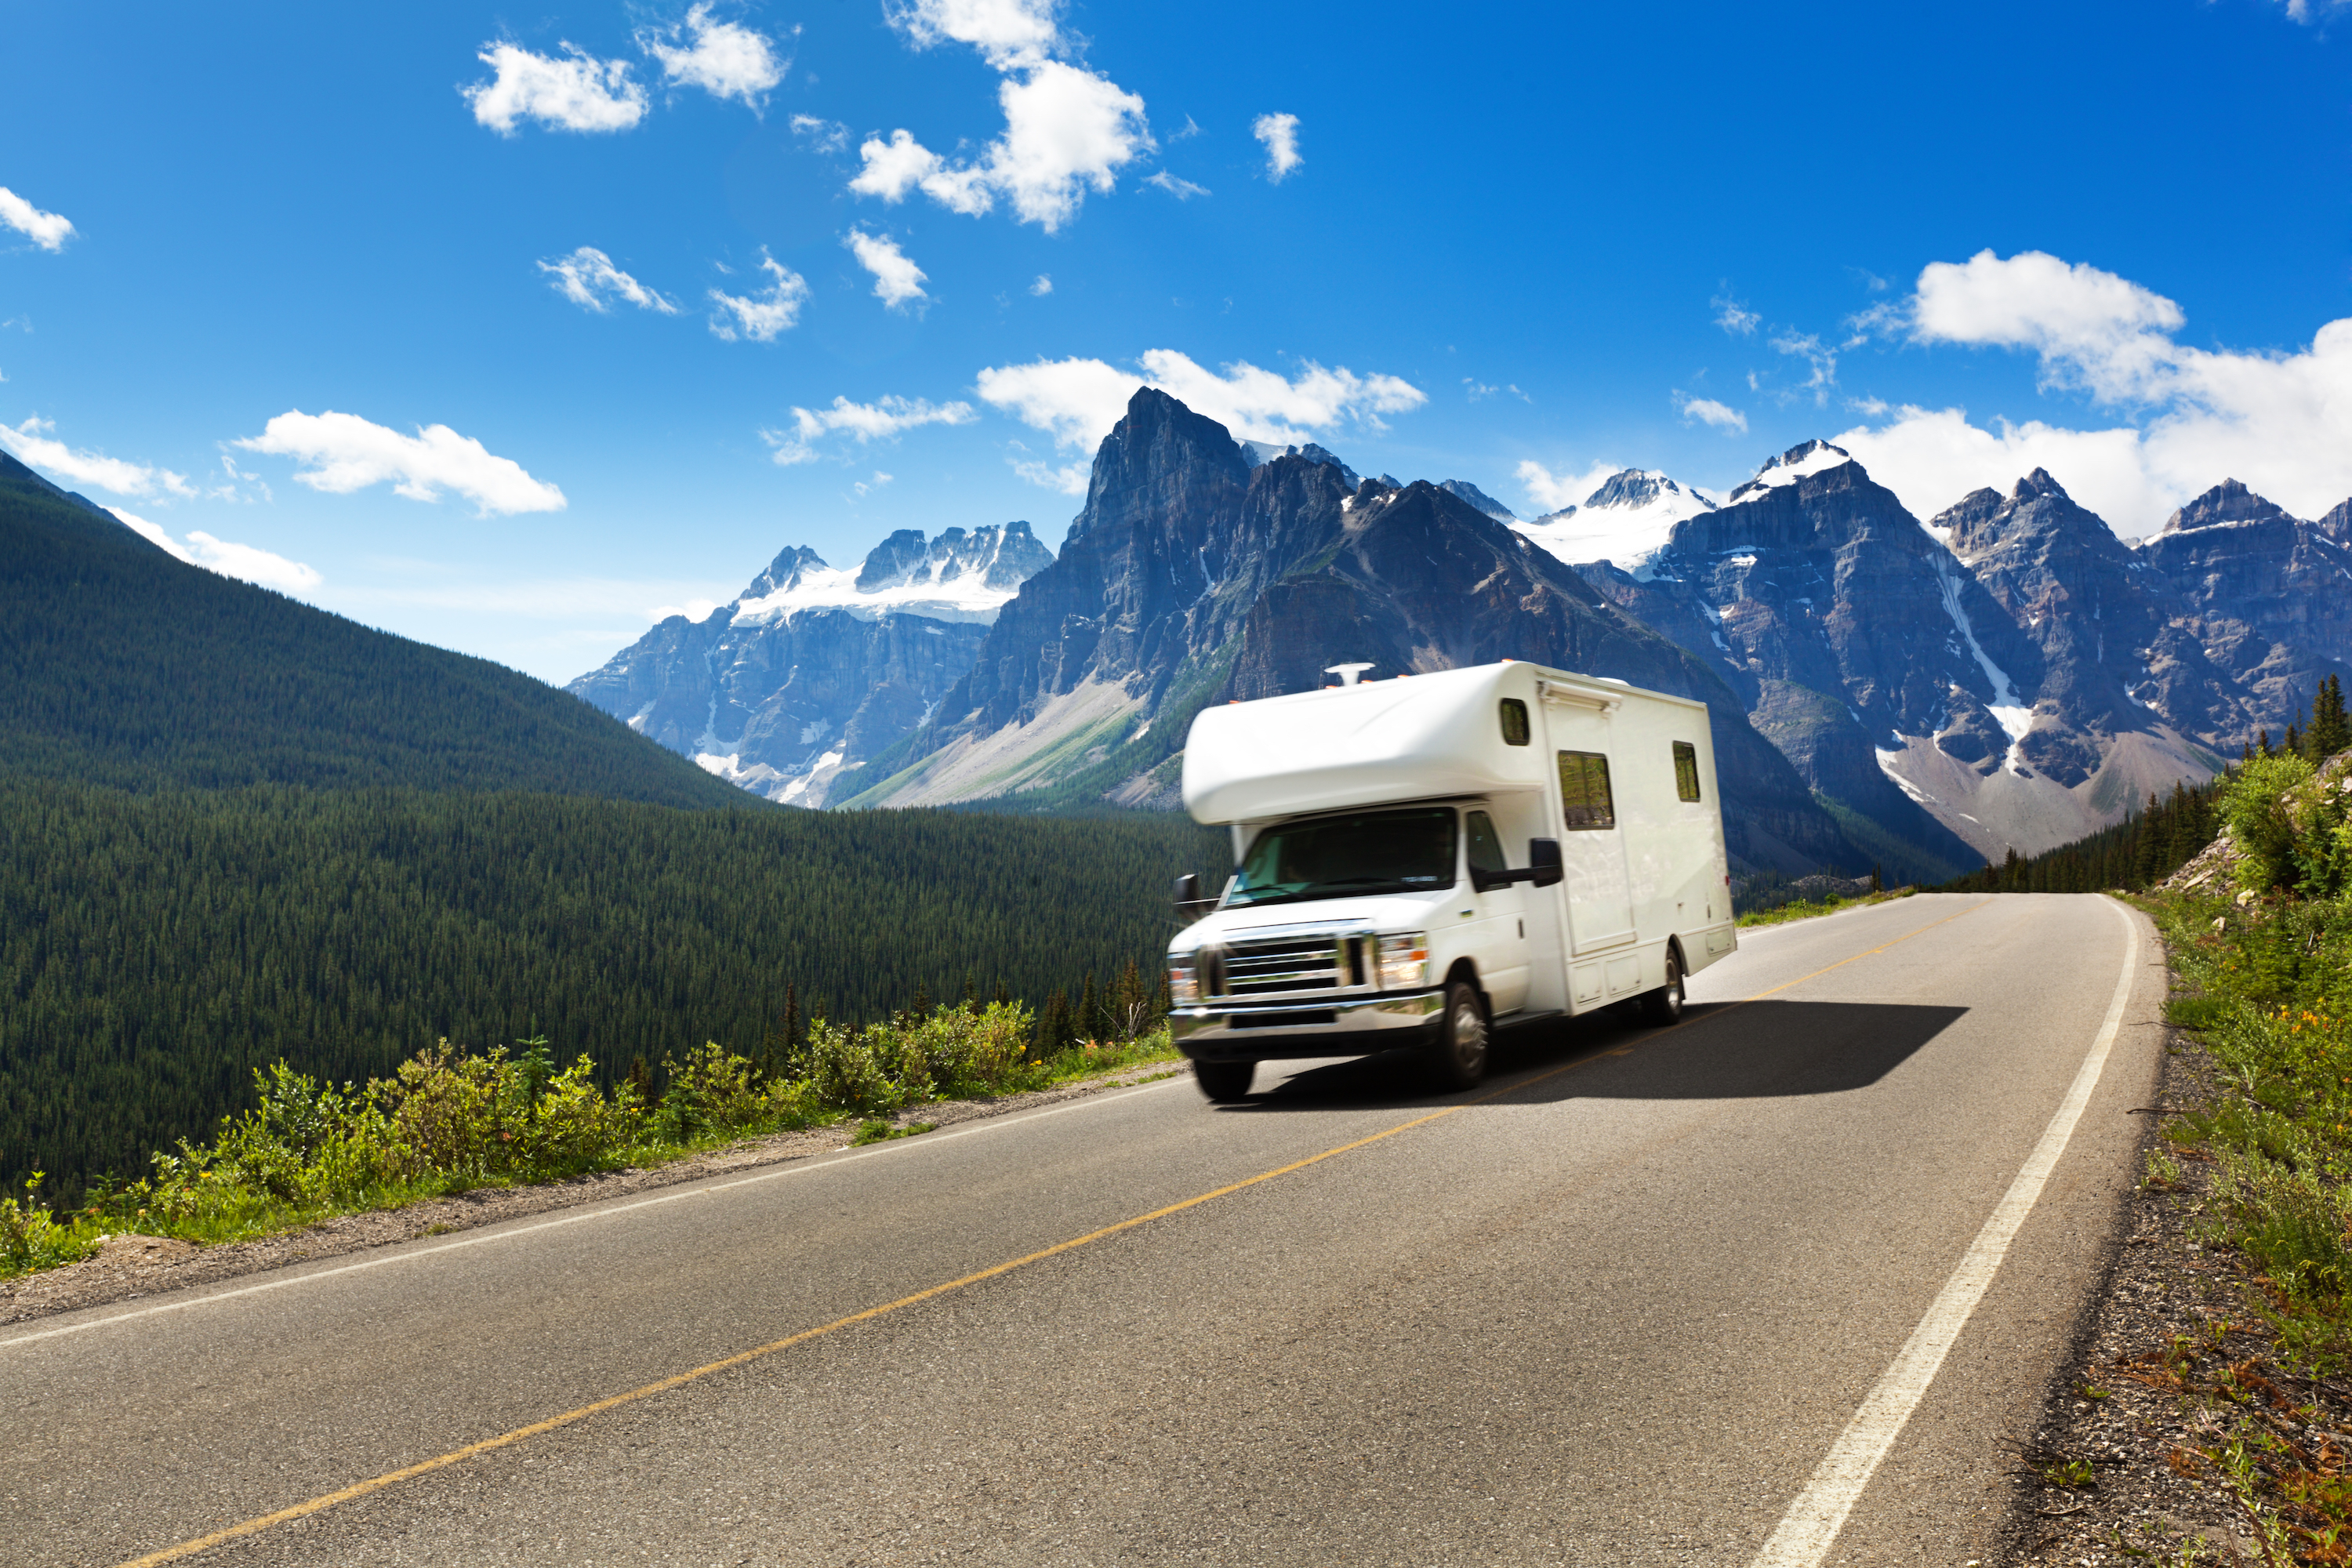 Can I Get an RV Loan at a Bank or Credit Union? - NerdWallet